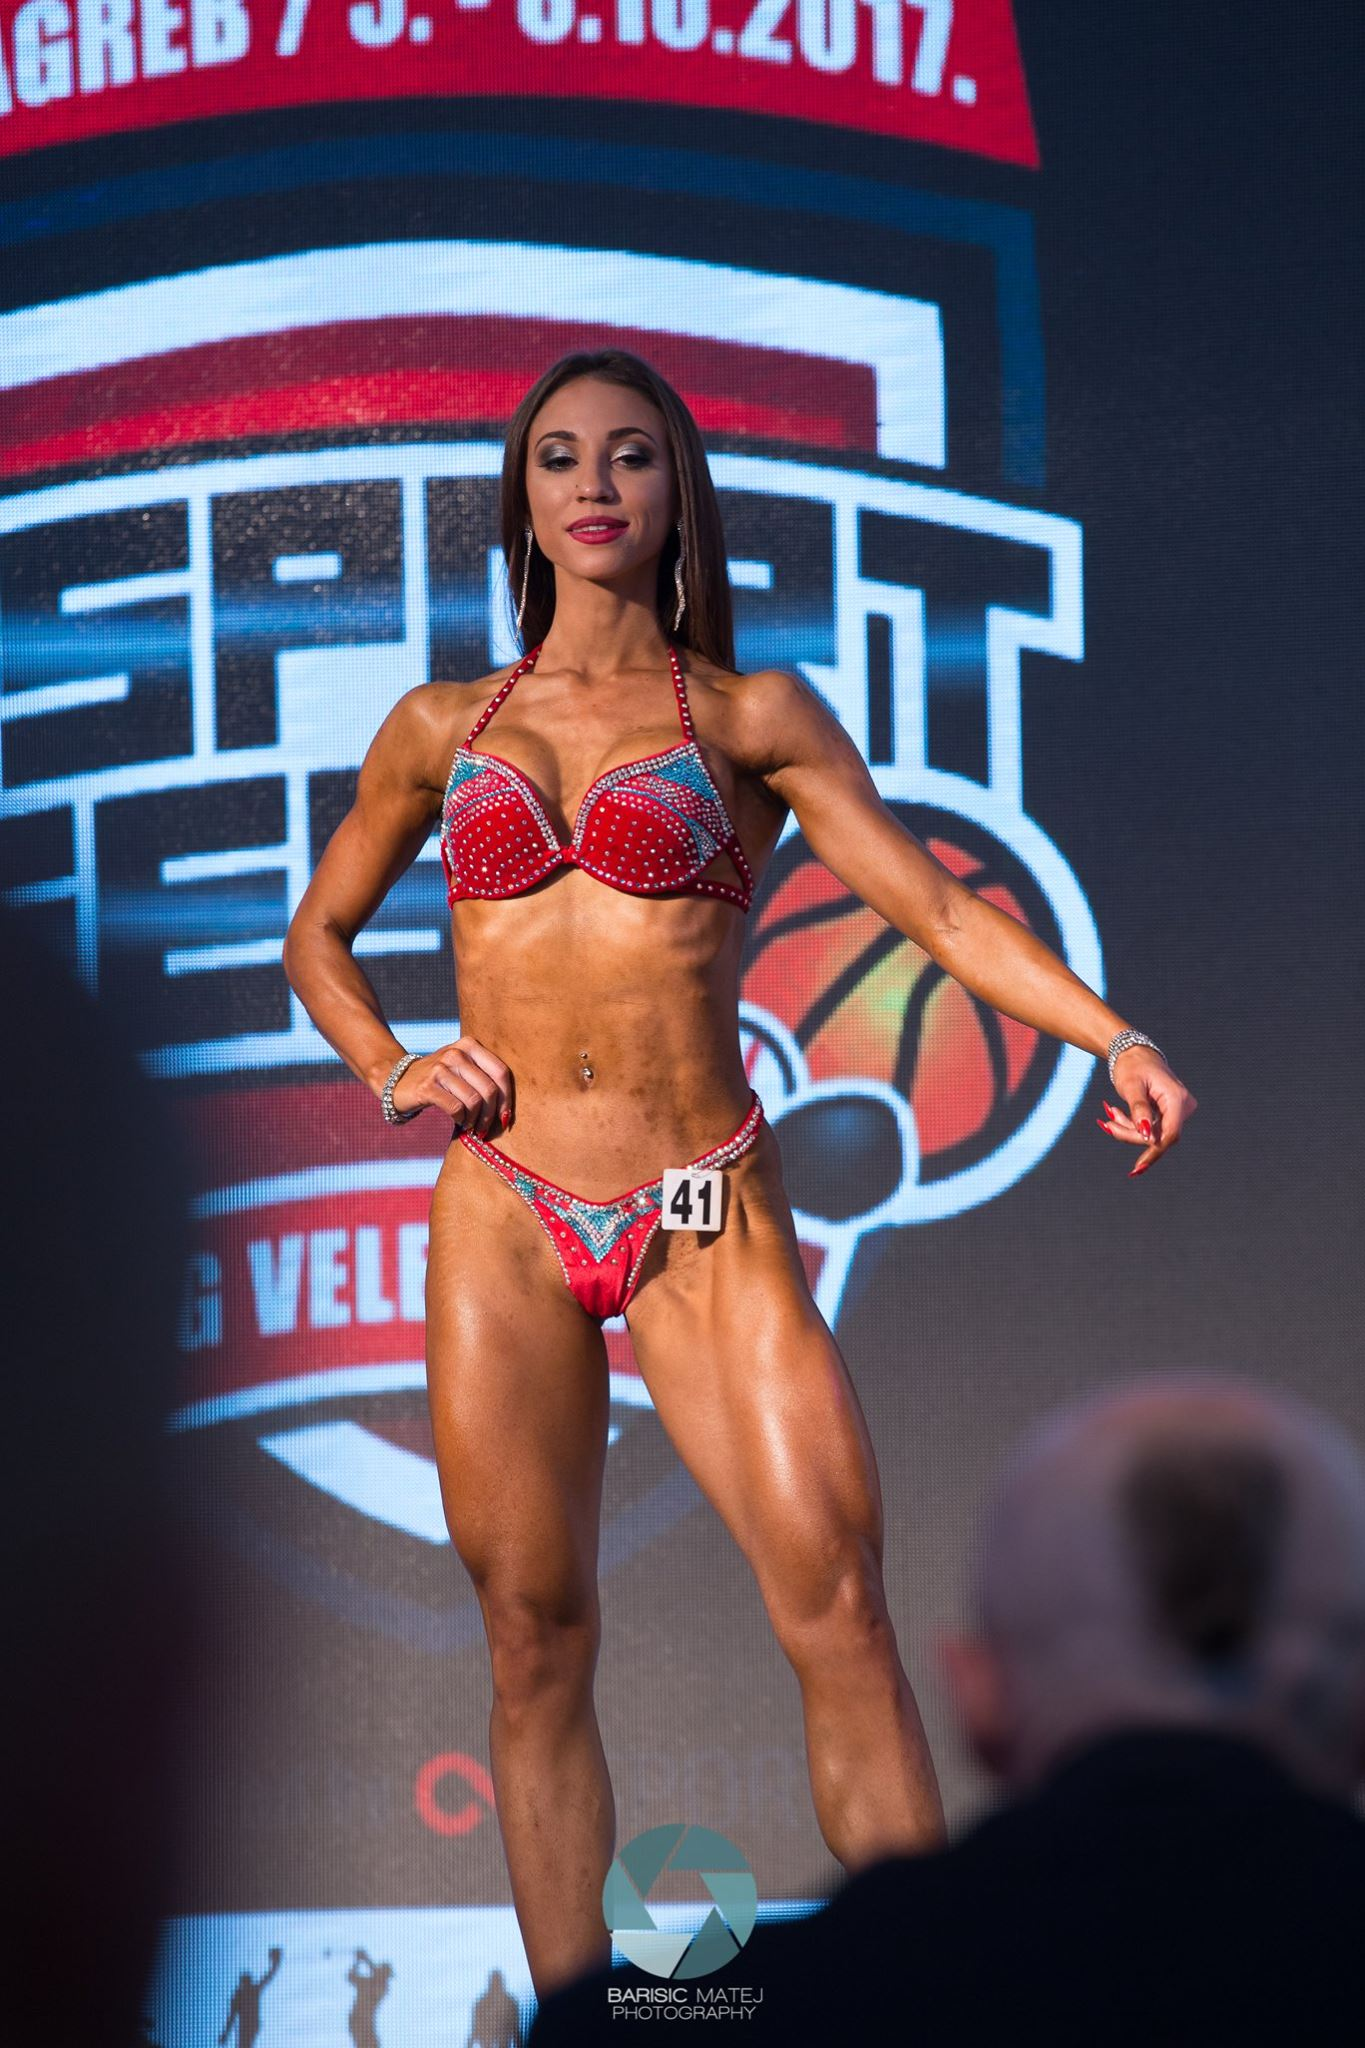 Bikini fitness competition makeup - how to do it?